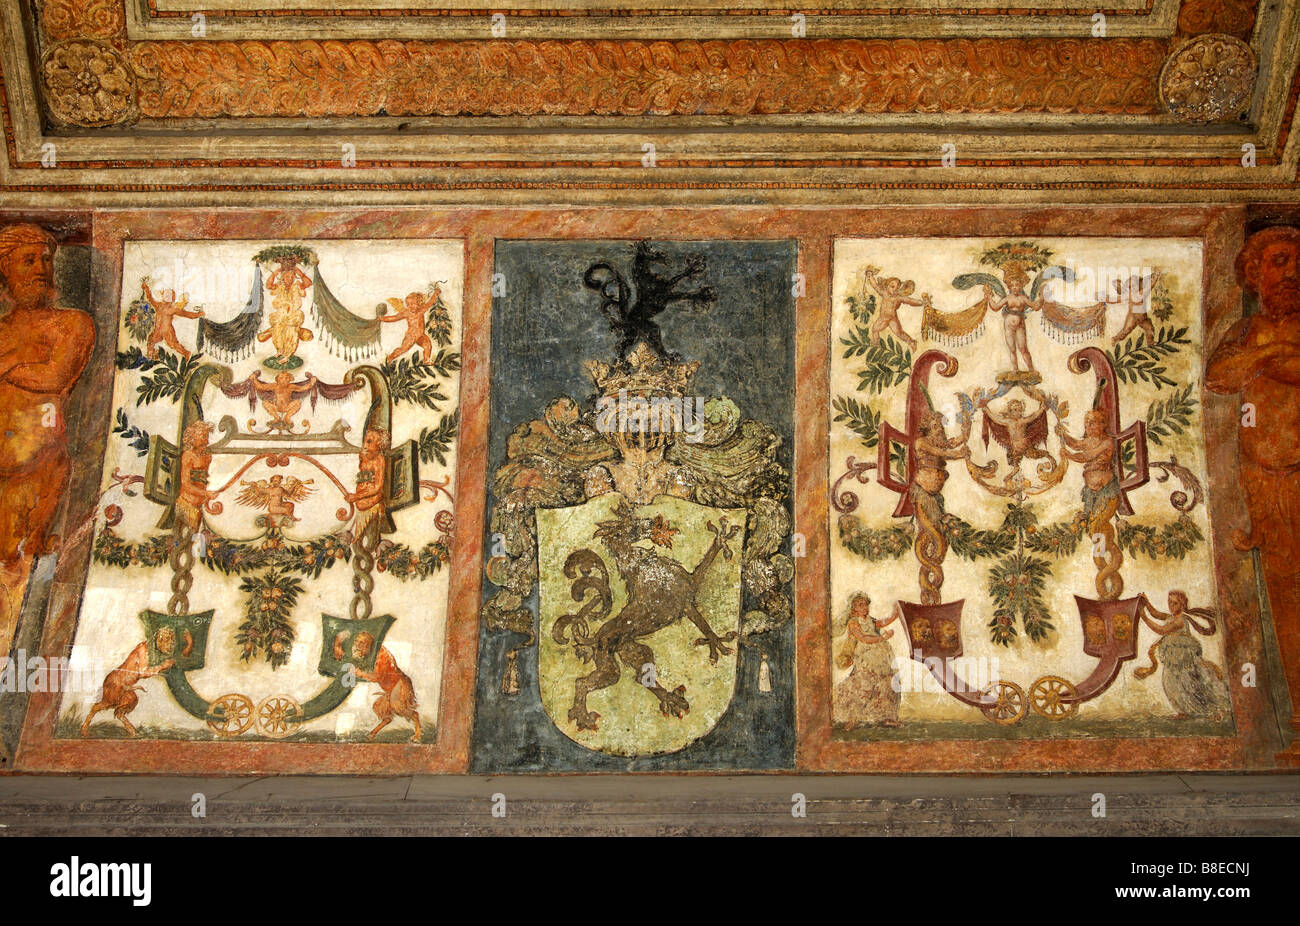 Coat of arms in the inner part of the Swiss Gate portal, Hofburg Imperial Palace, Vienna, Austria - Stock Image